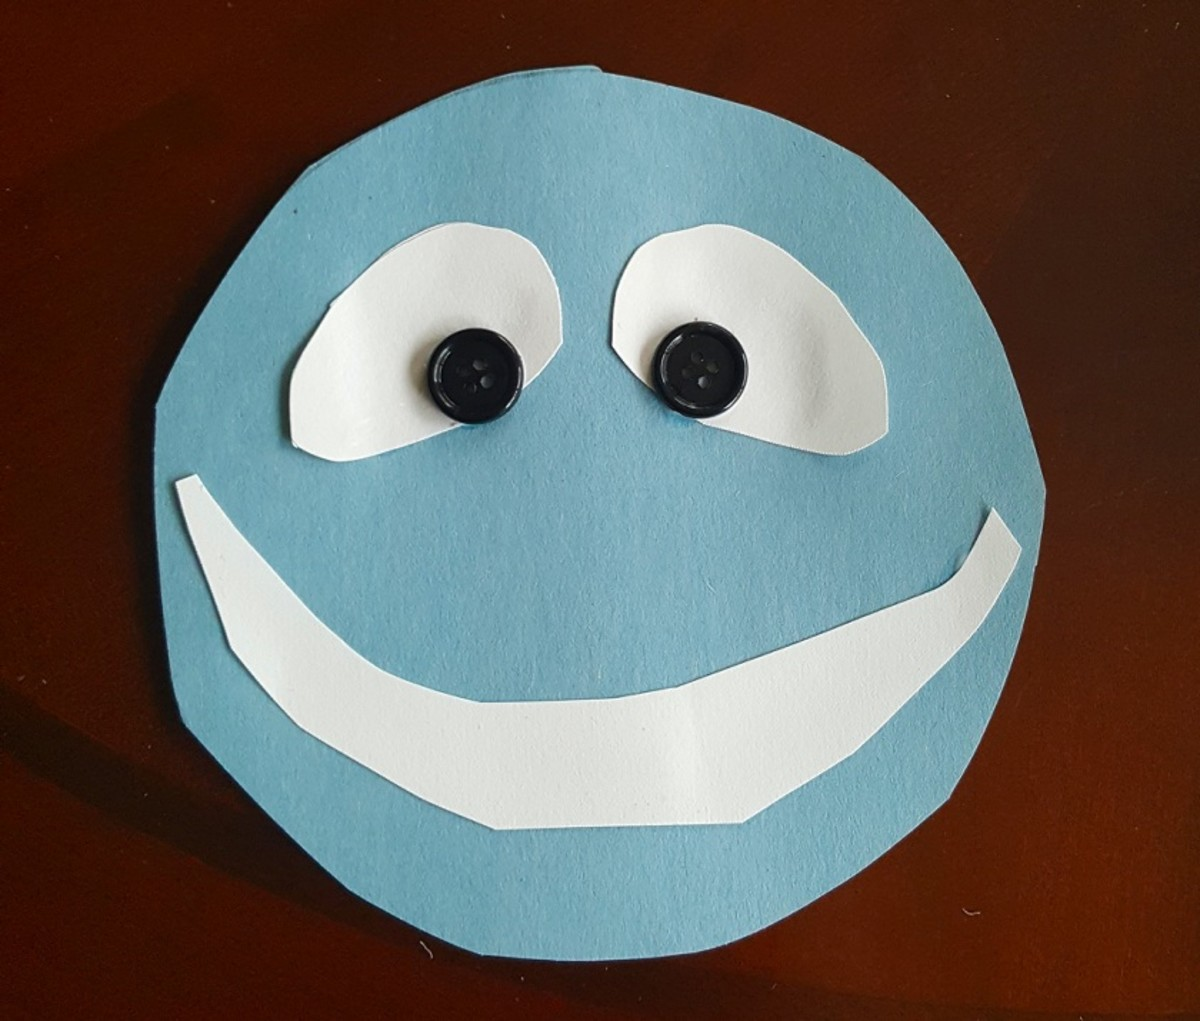 Glue a white semi circle onto your blue circle to make teeth.